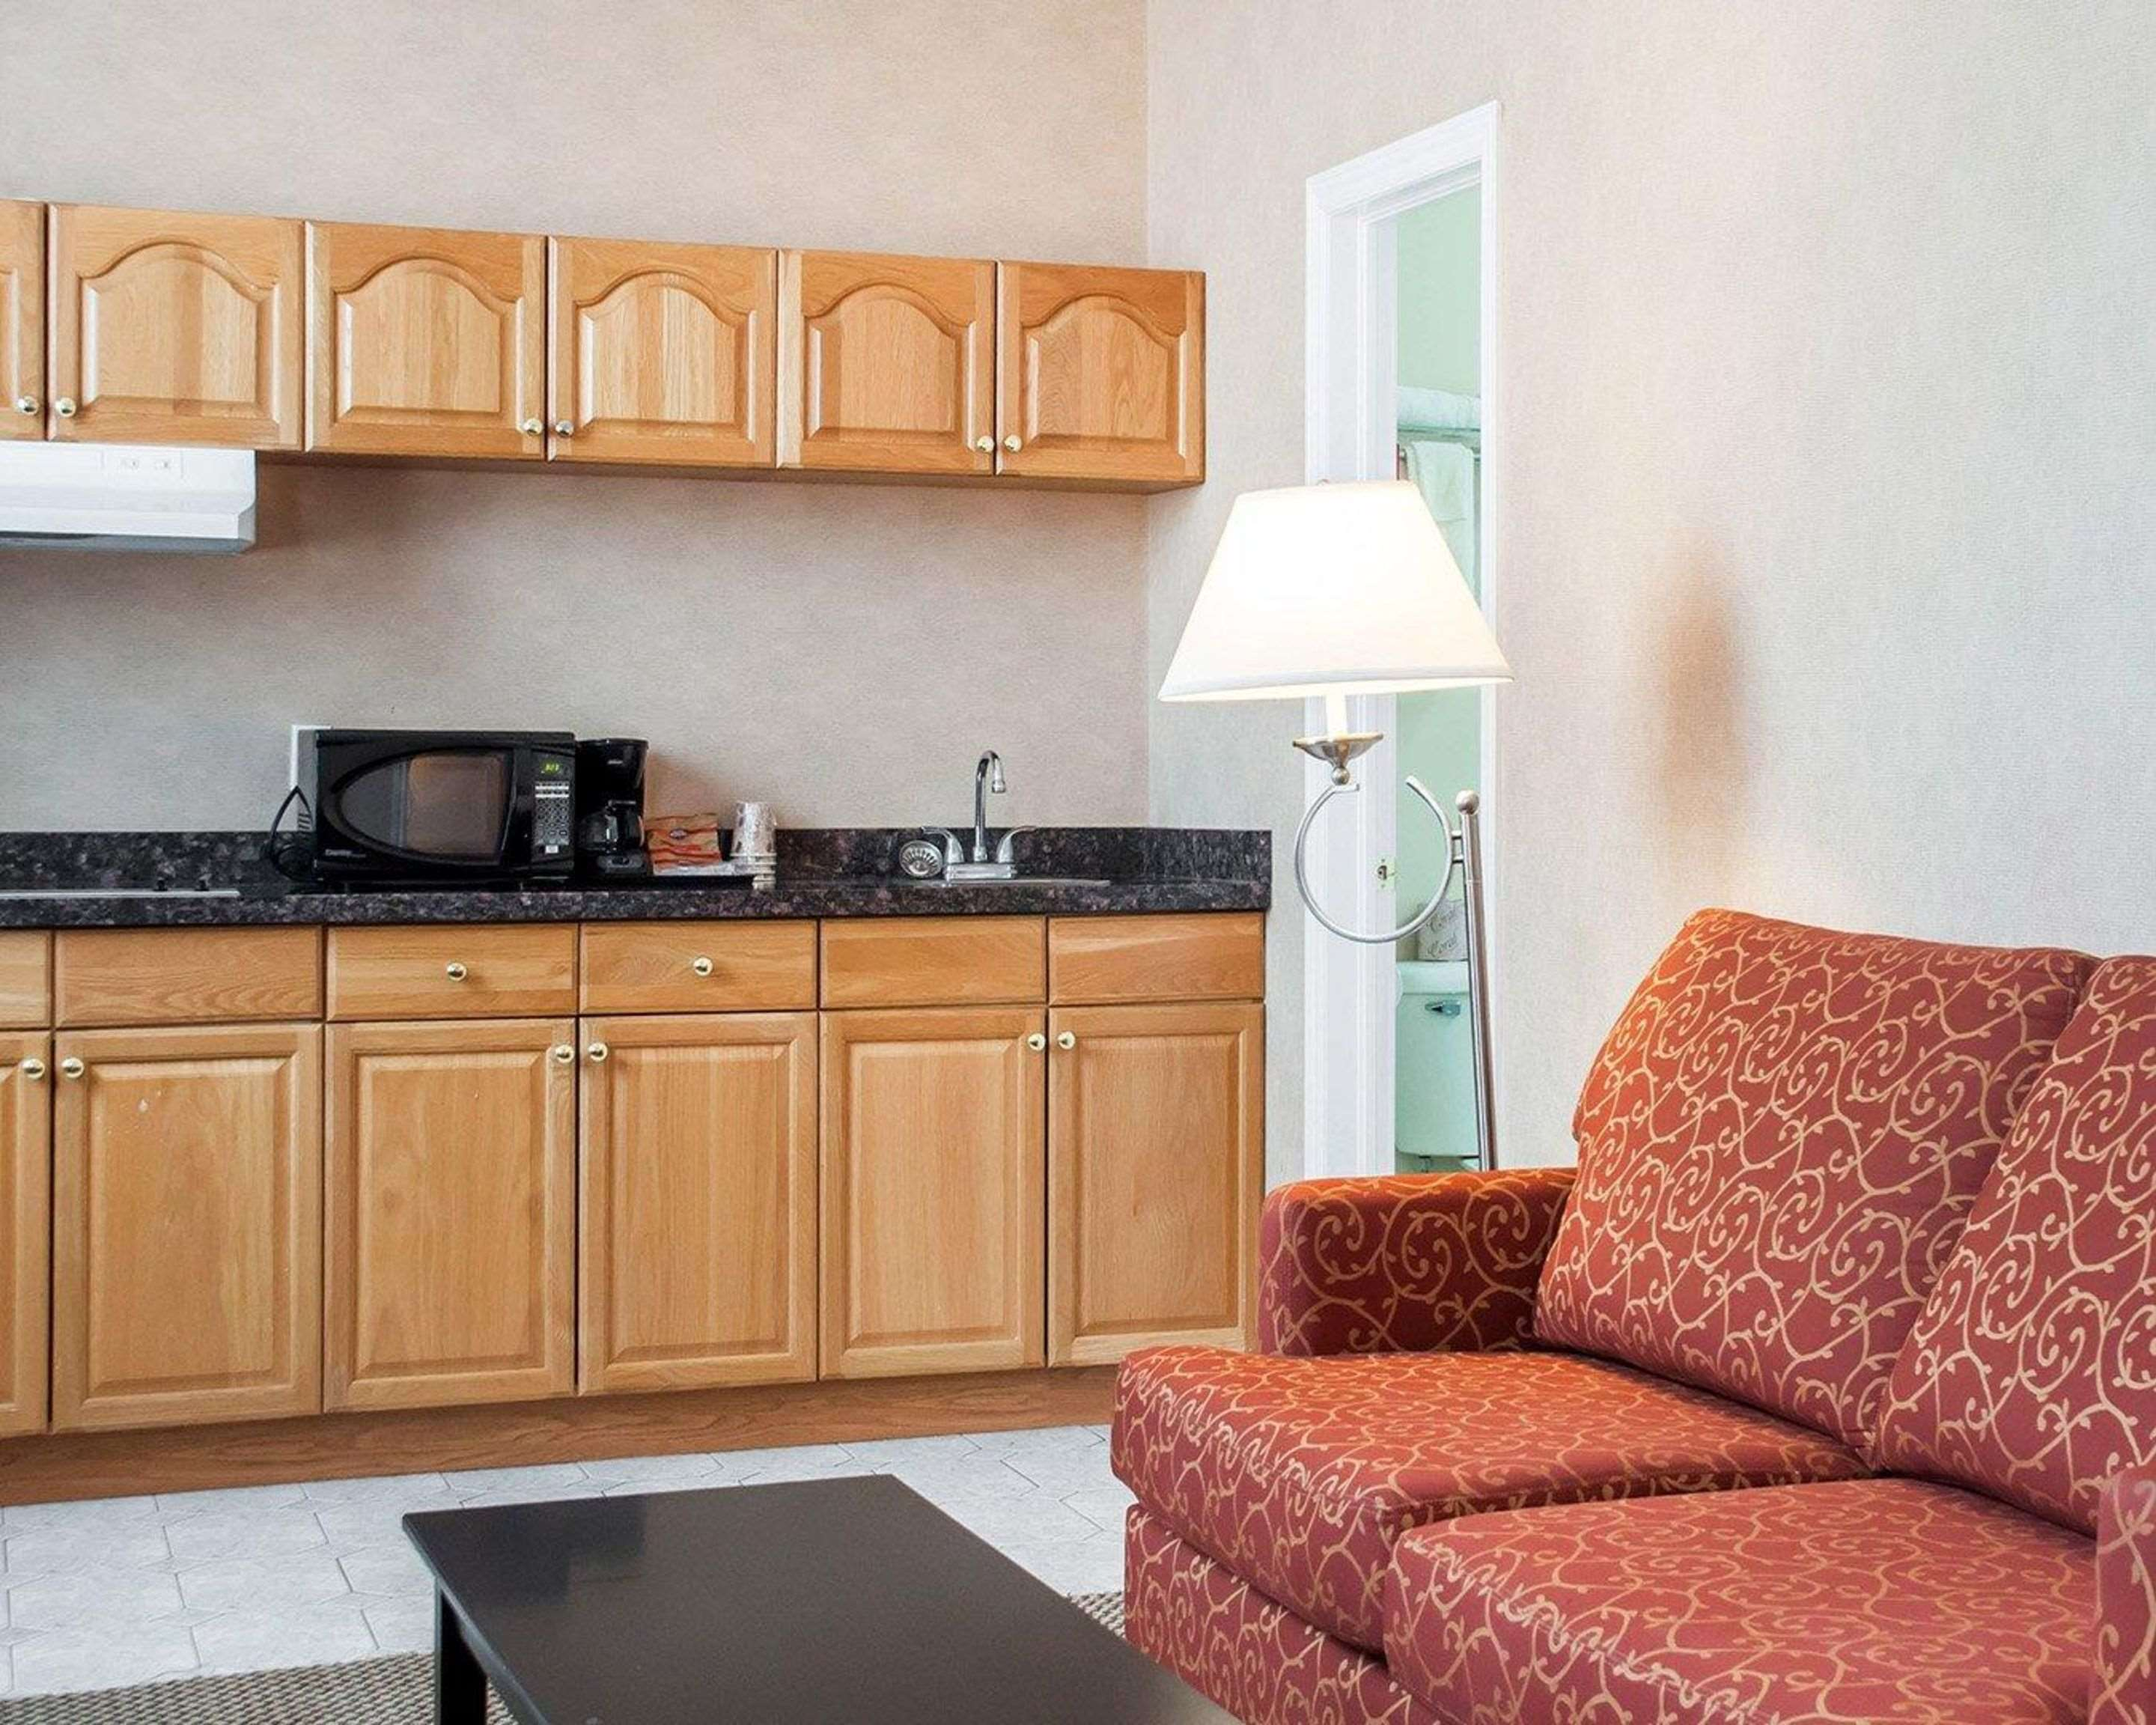 Spacious suite with kitchen area Econo Lodge Woodstock (519)533-6066